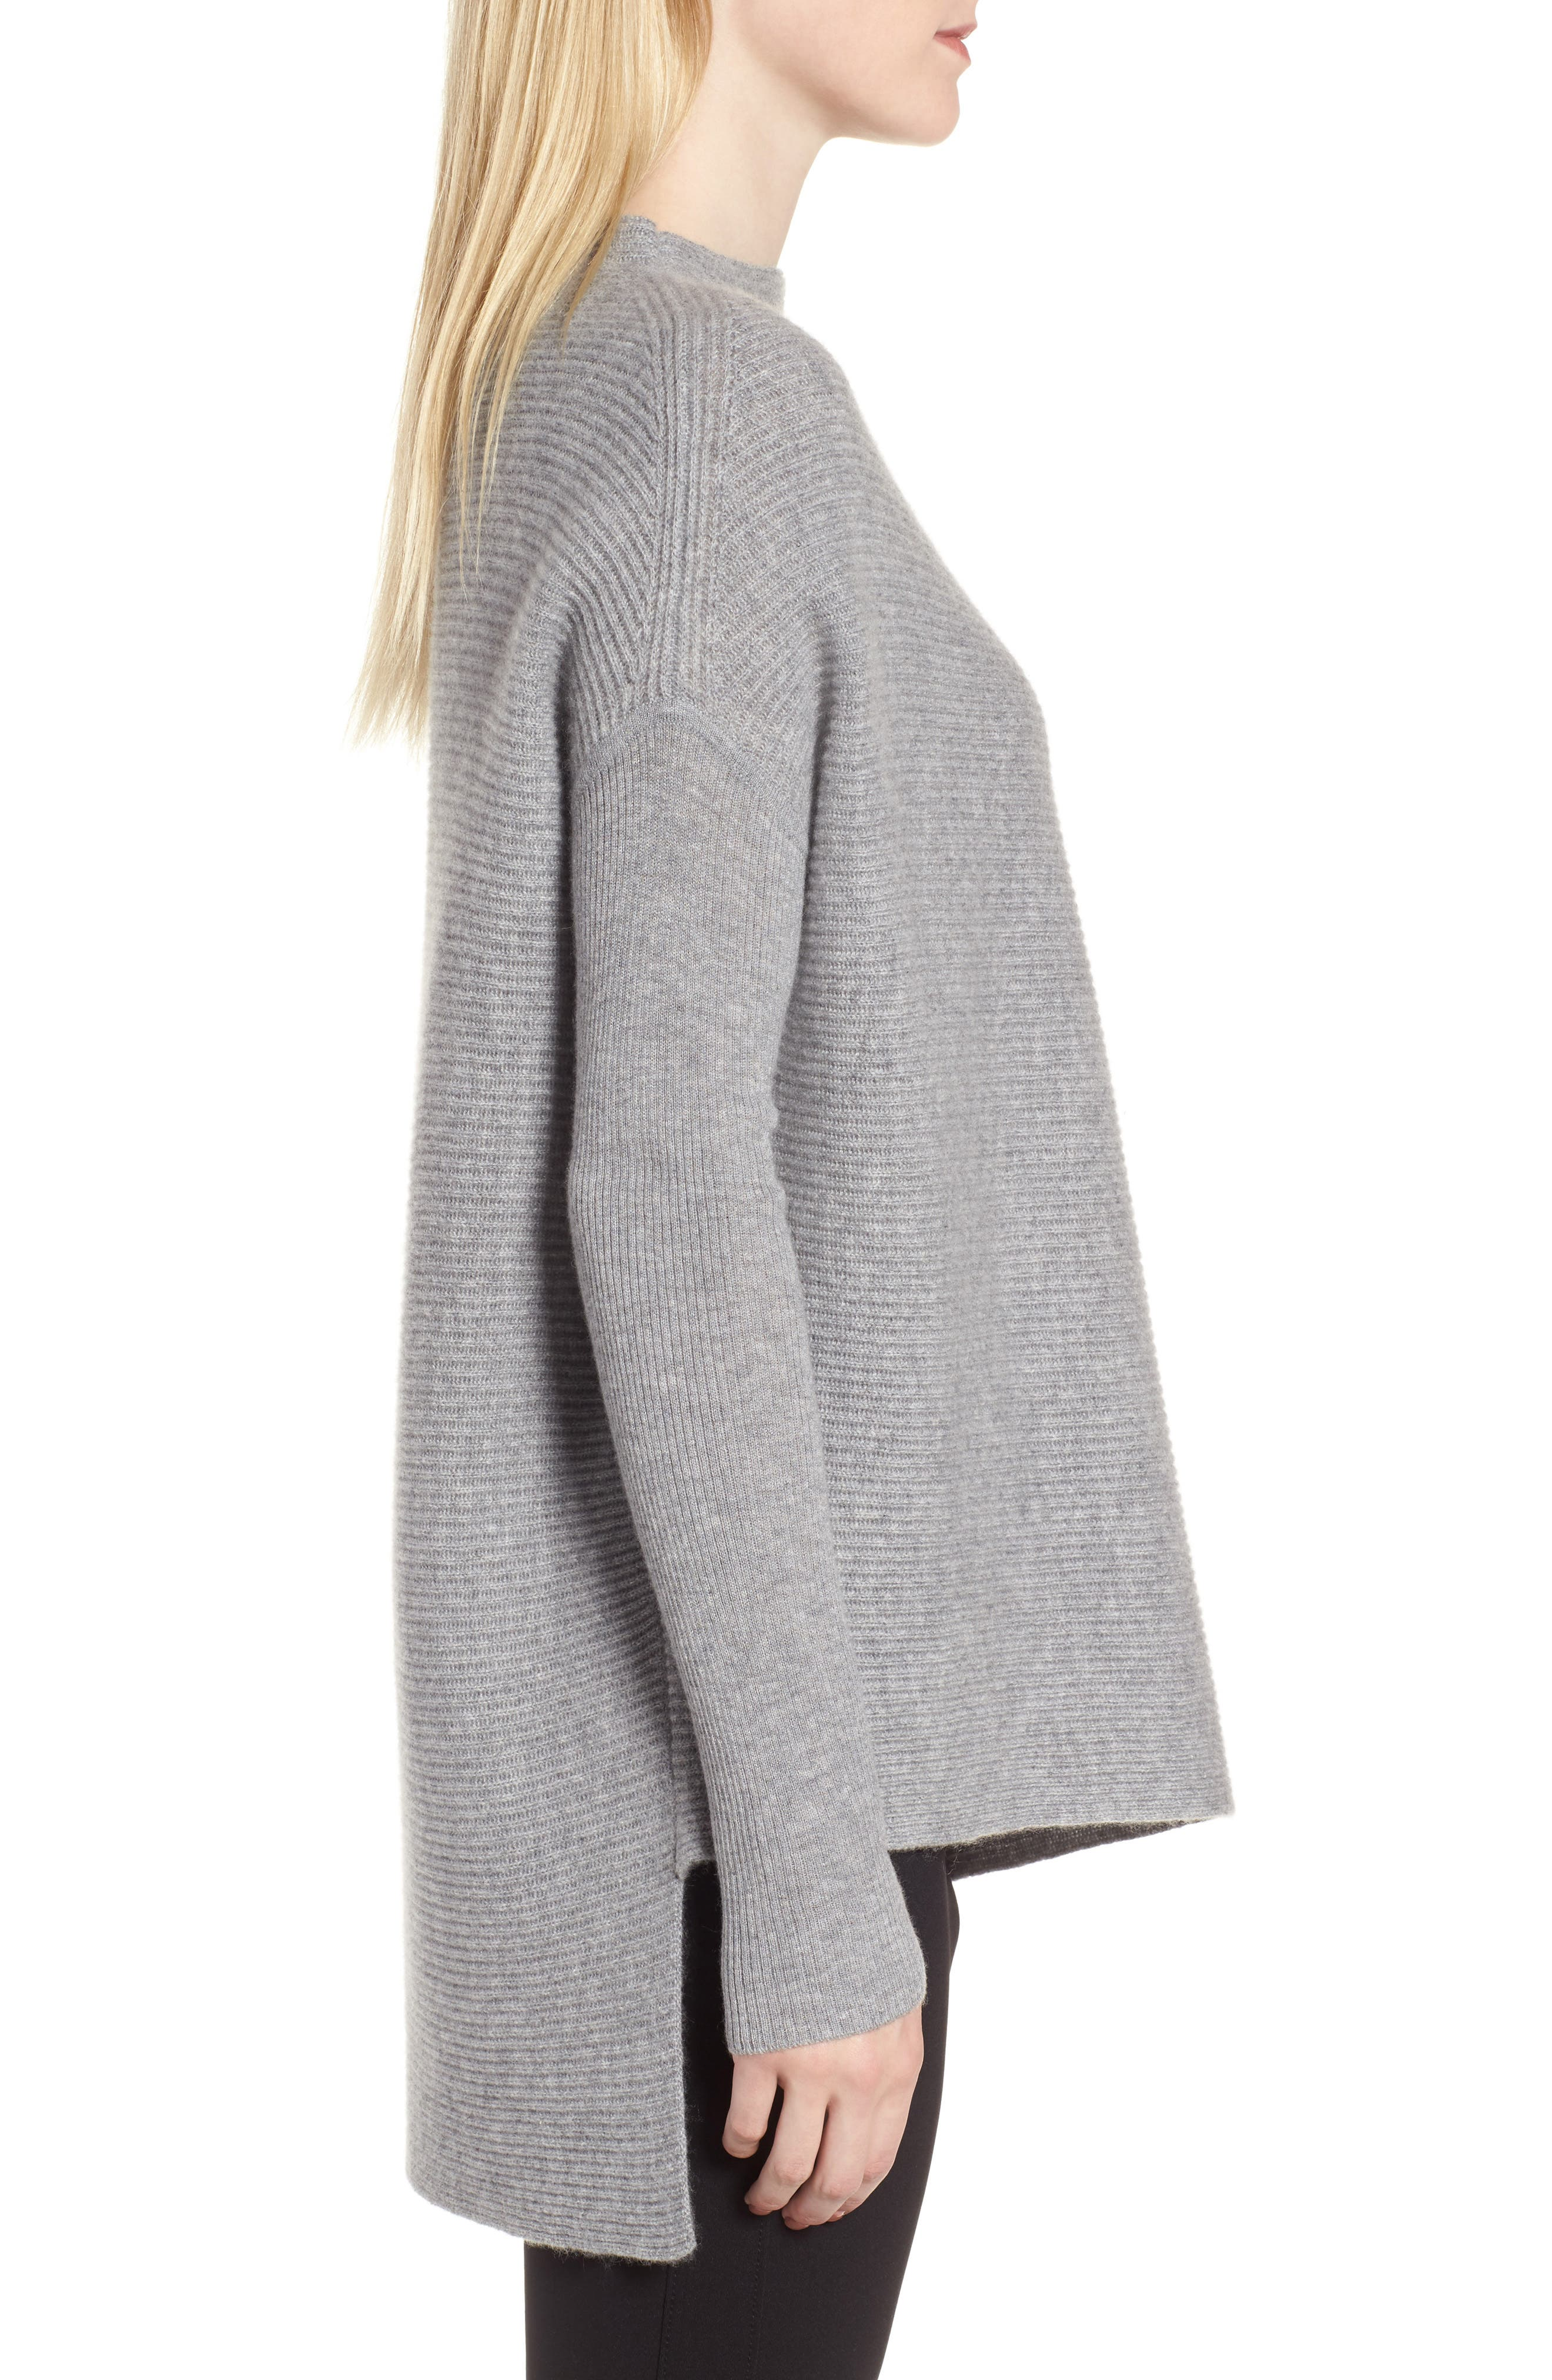 NORDSTROM SIGNATURE, Cashmere Asymmetrical Pullover, Alternate thumbnail 3, color, GREY FILIGREE HEATHER